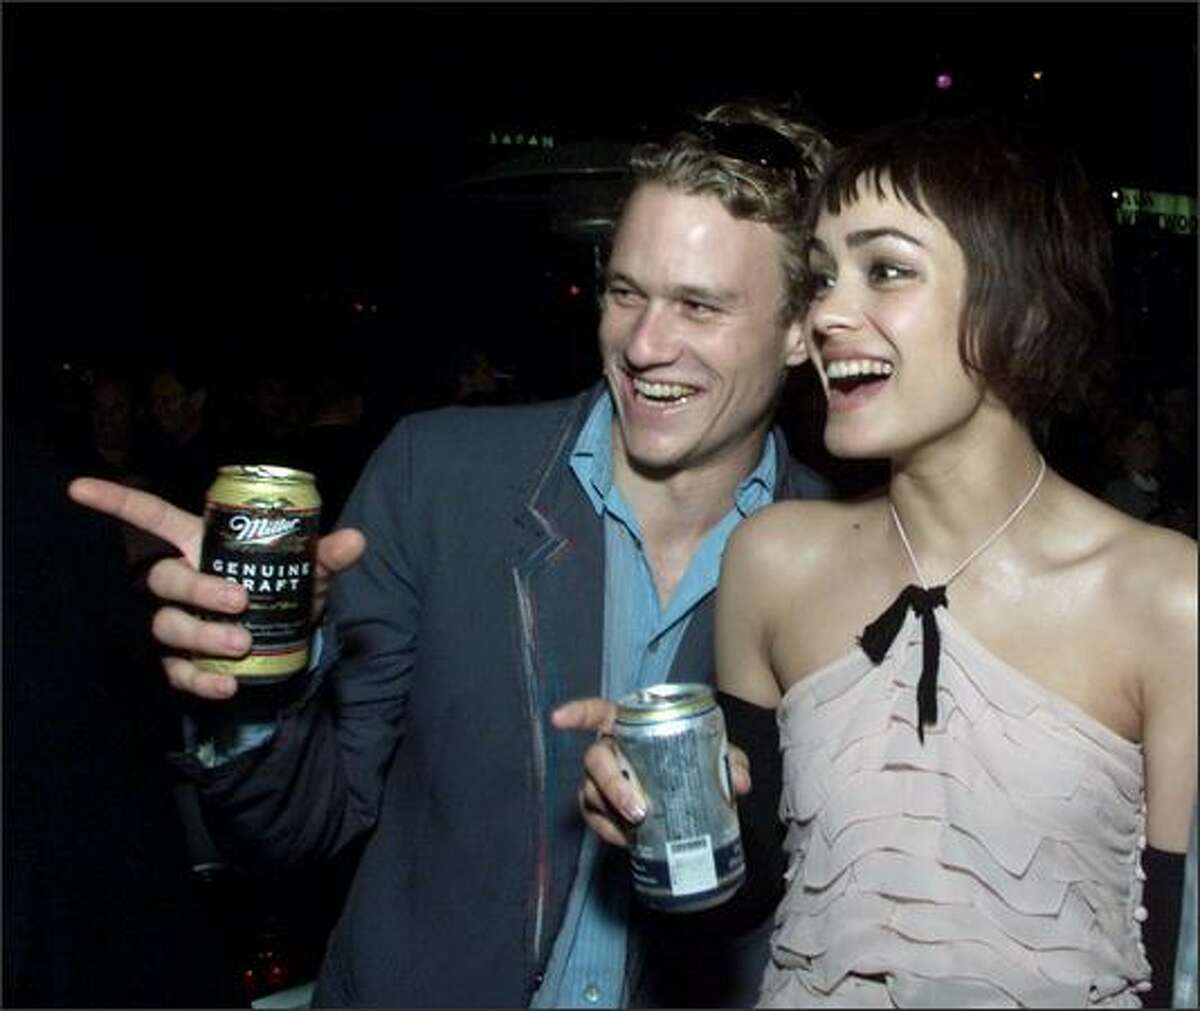 Actors Heath Ledger and Shannyn Sossamon at the after-party for the premiere of 'A Knight's Tale' in Los Angeles in 2001.